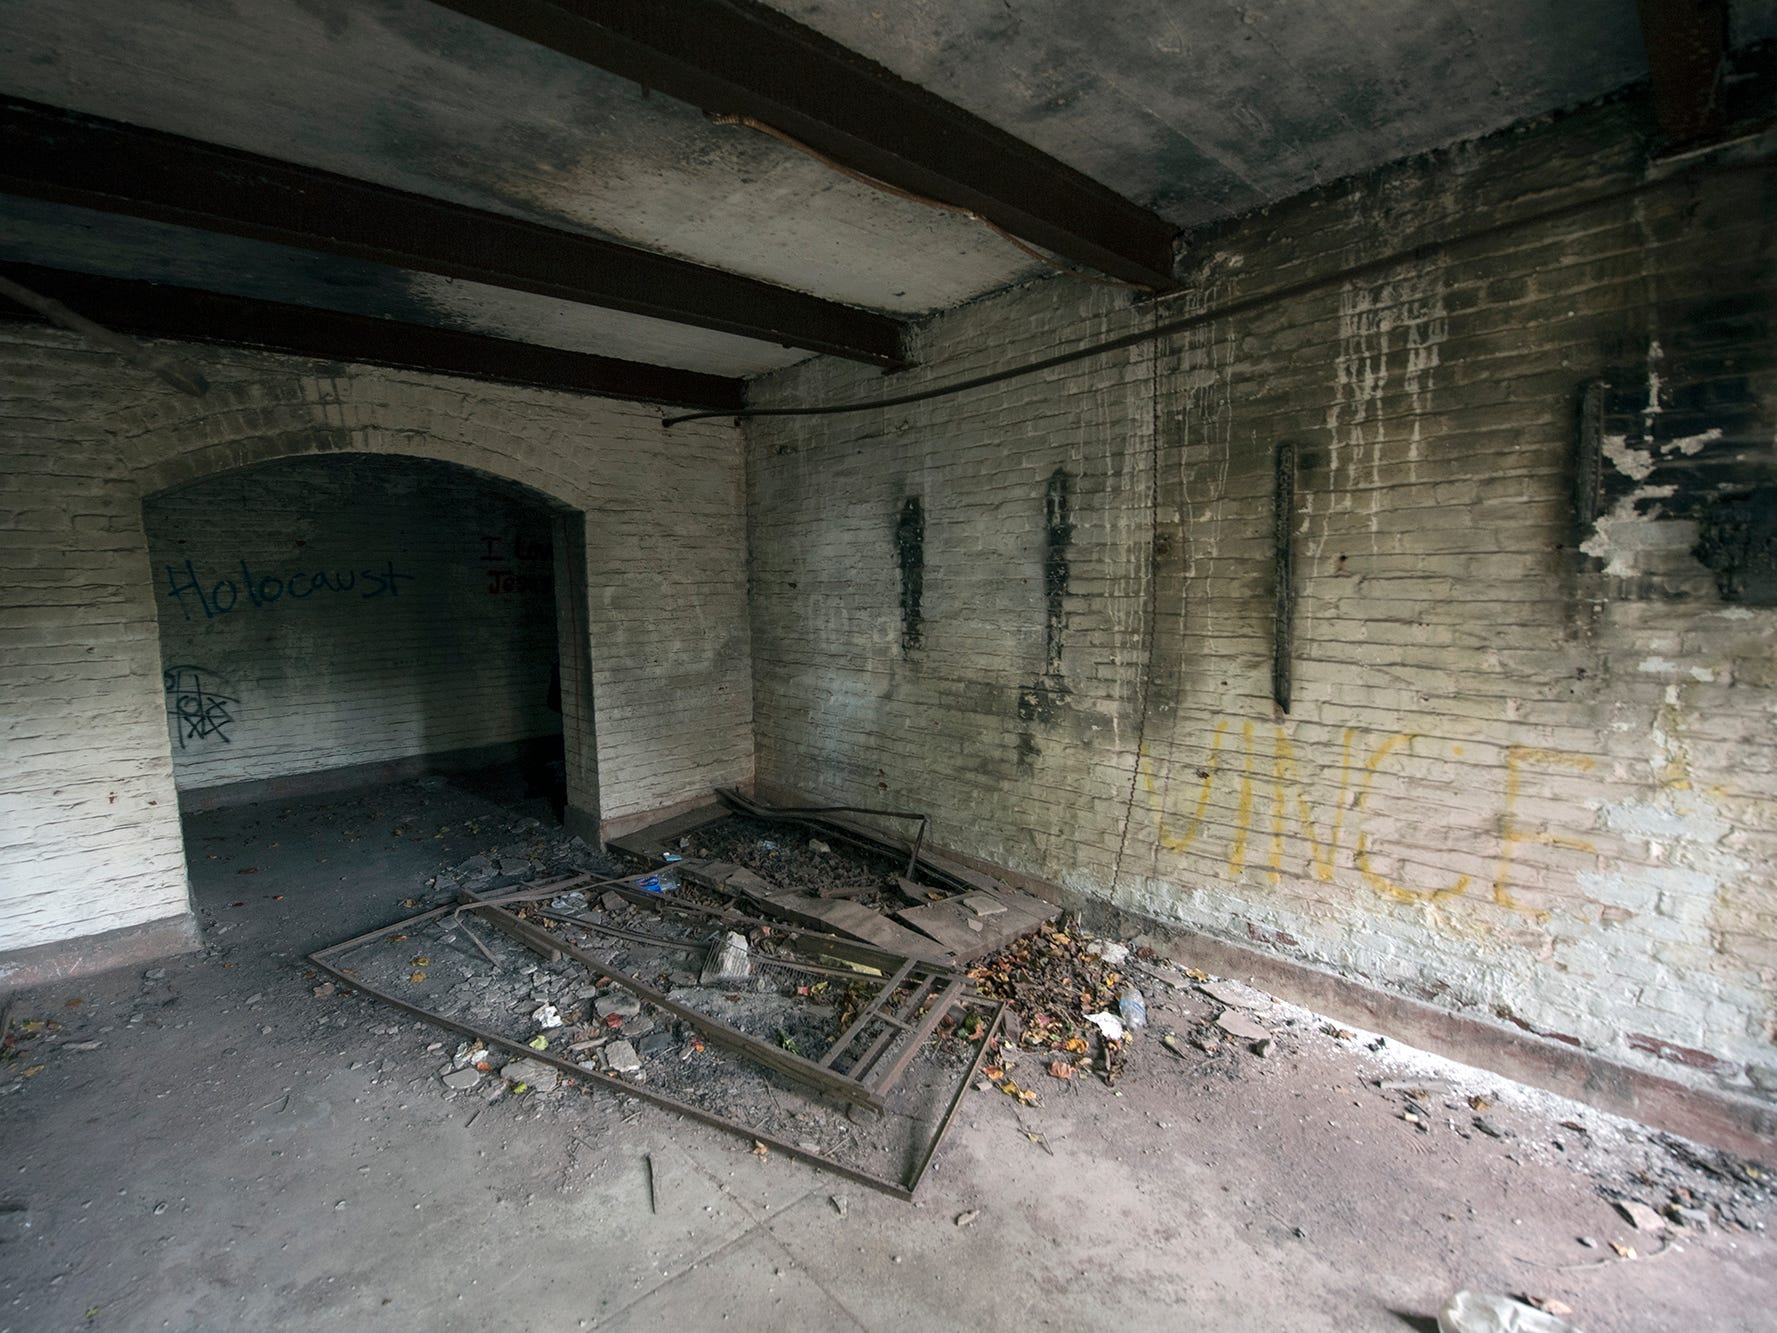 This is a room in the basement of the old York County Prison.